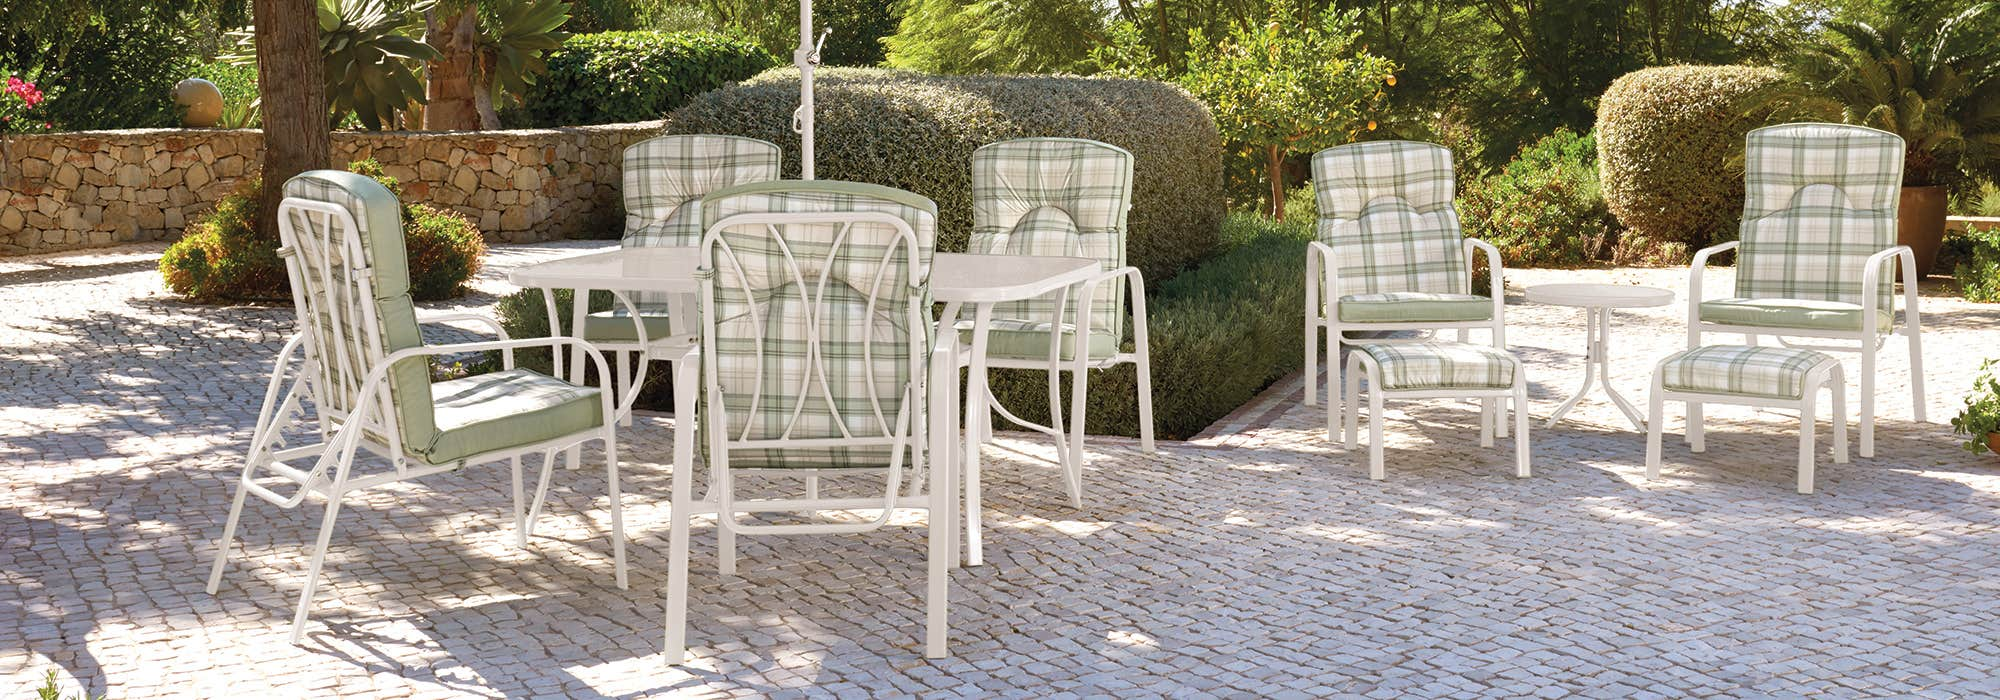 Georgia Garden Furniture Set